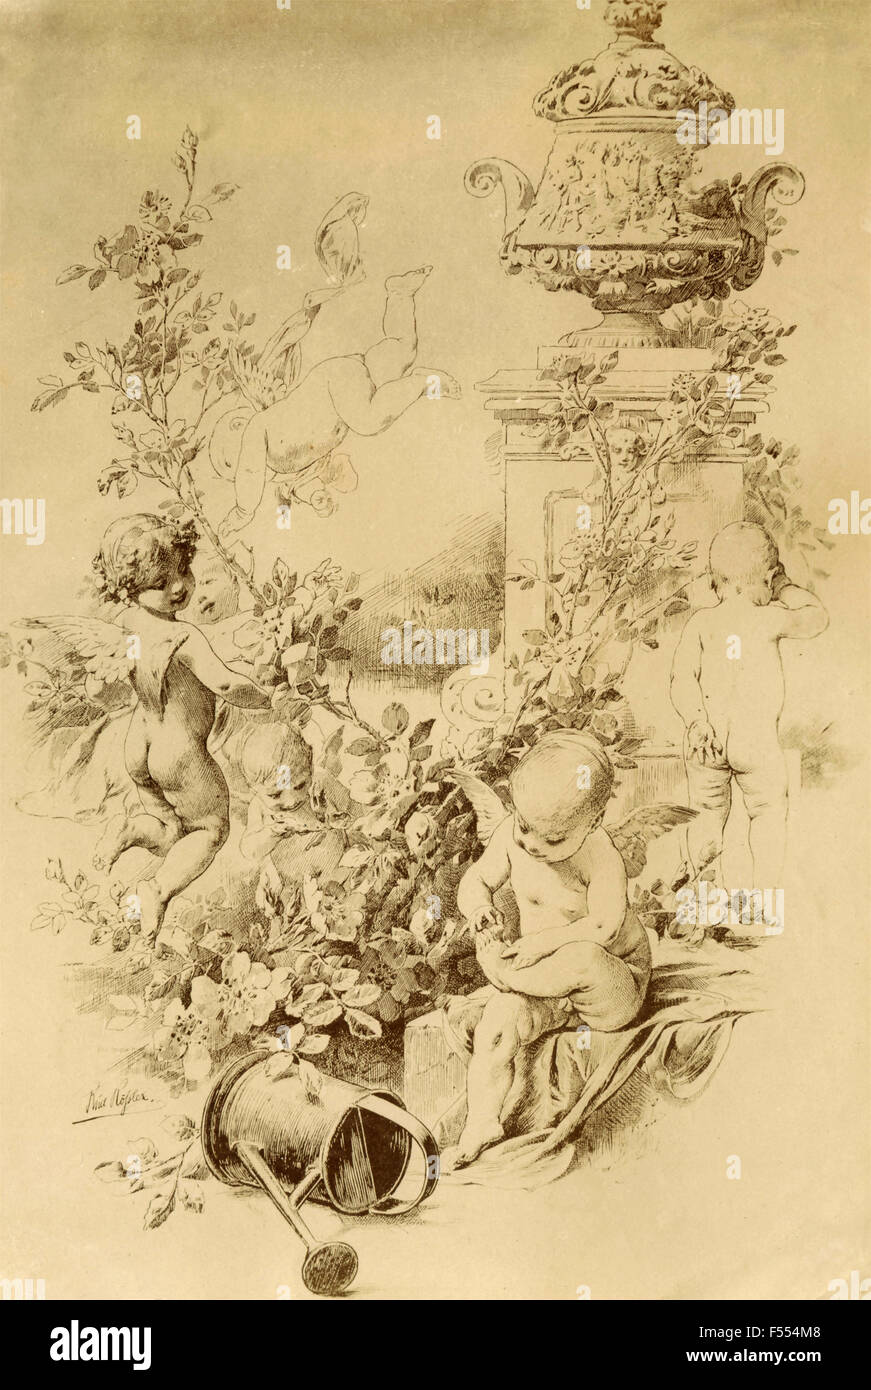 Drawing depicting cupids in a garden - Stock Image